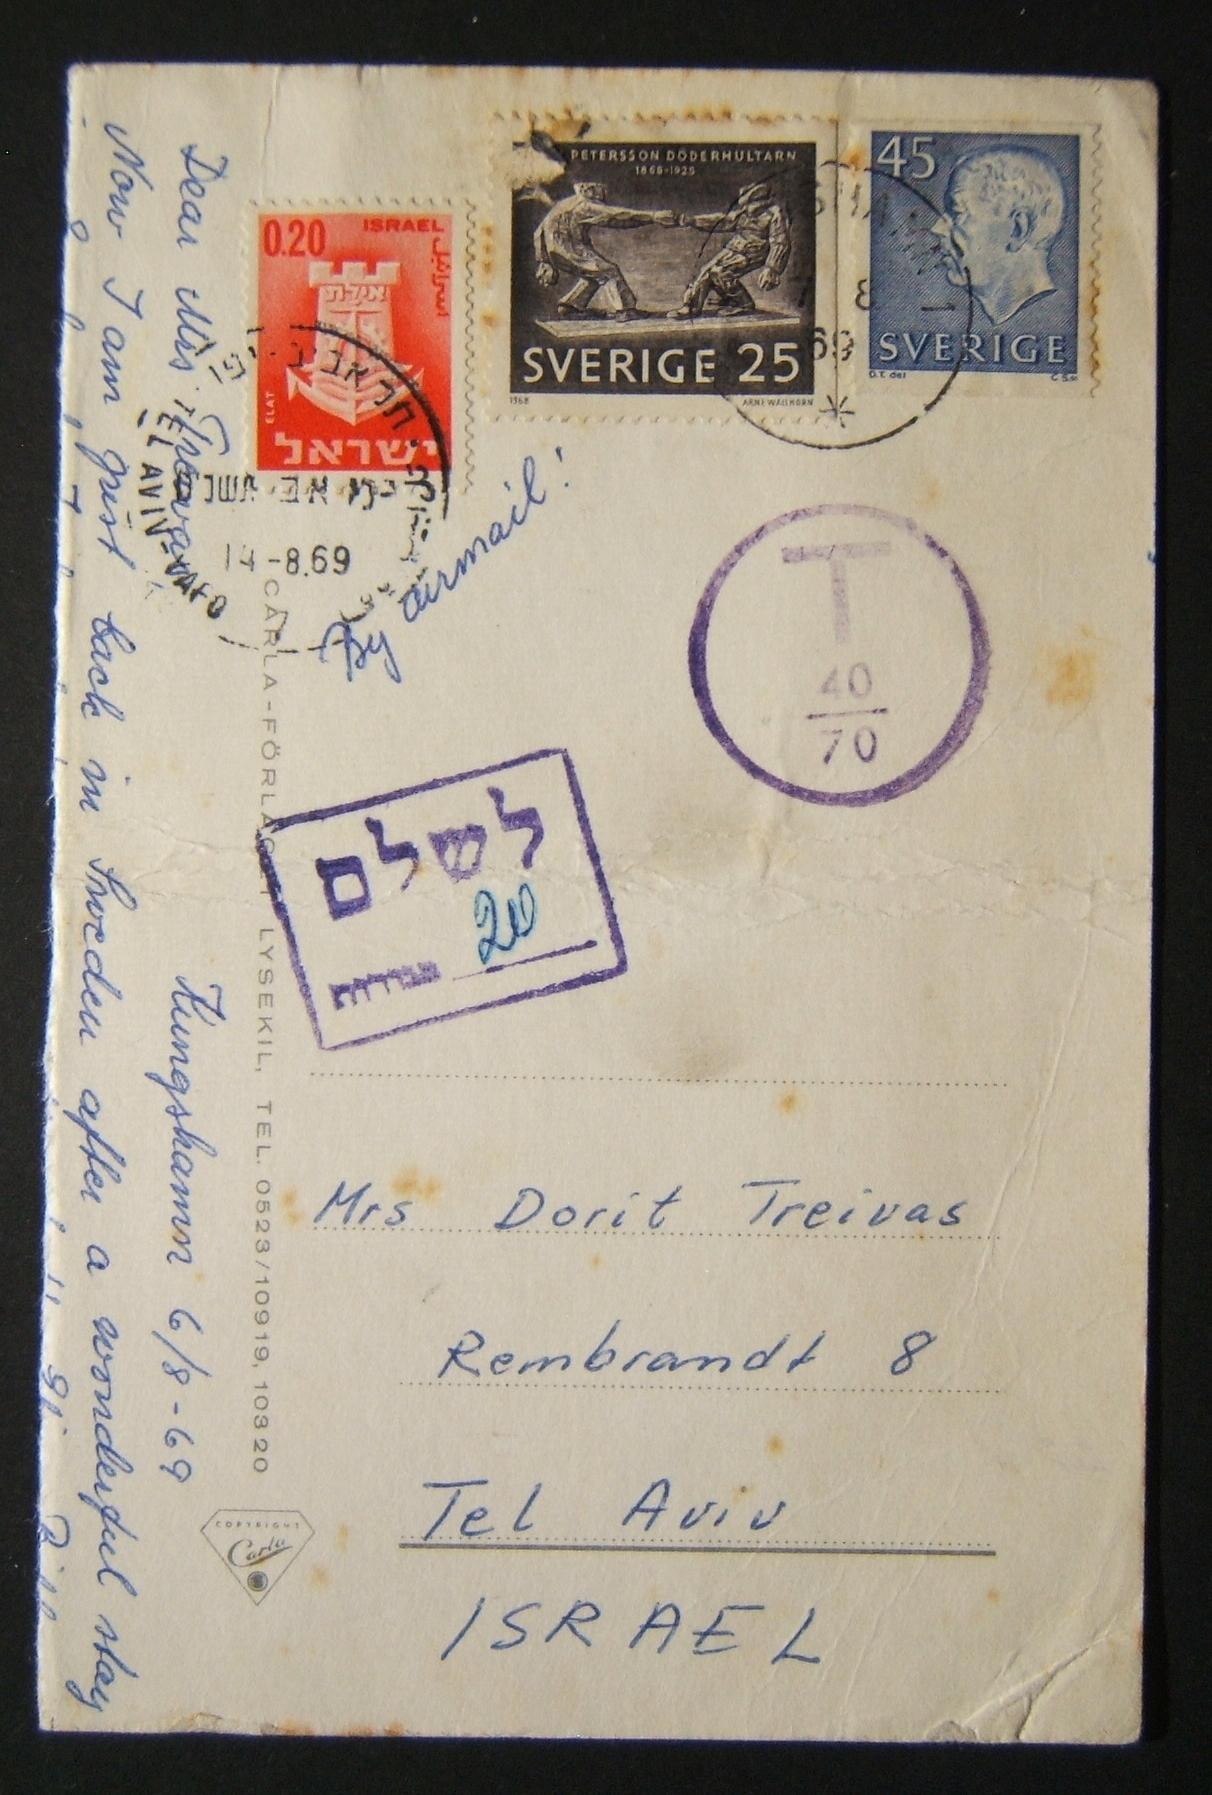 1969 incoming Swedish taxed mail: half of 7-8-69 airmail ppc ex SWEDEN to TLV underfranked at 0.70Kr and taxed 0.20L in Israel, paid 14-8-69 using 1965/67 1st Town Emblems Ba308 fr